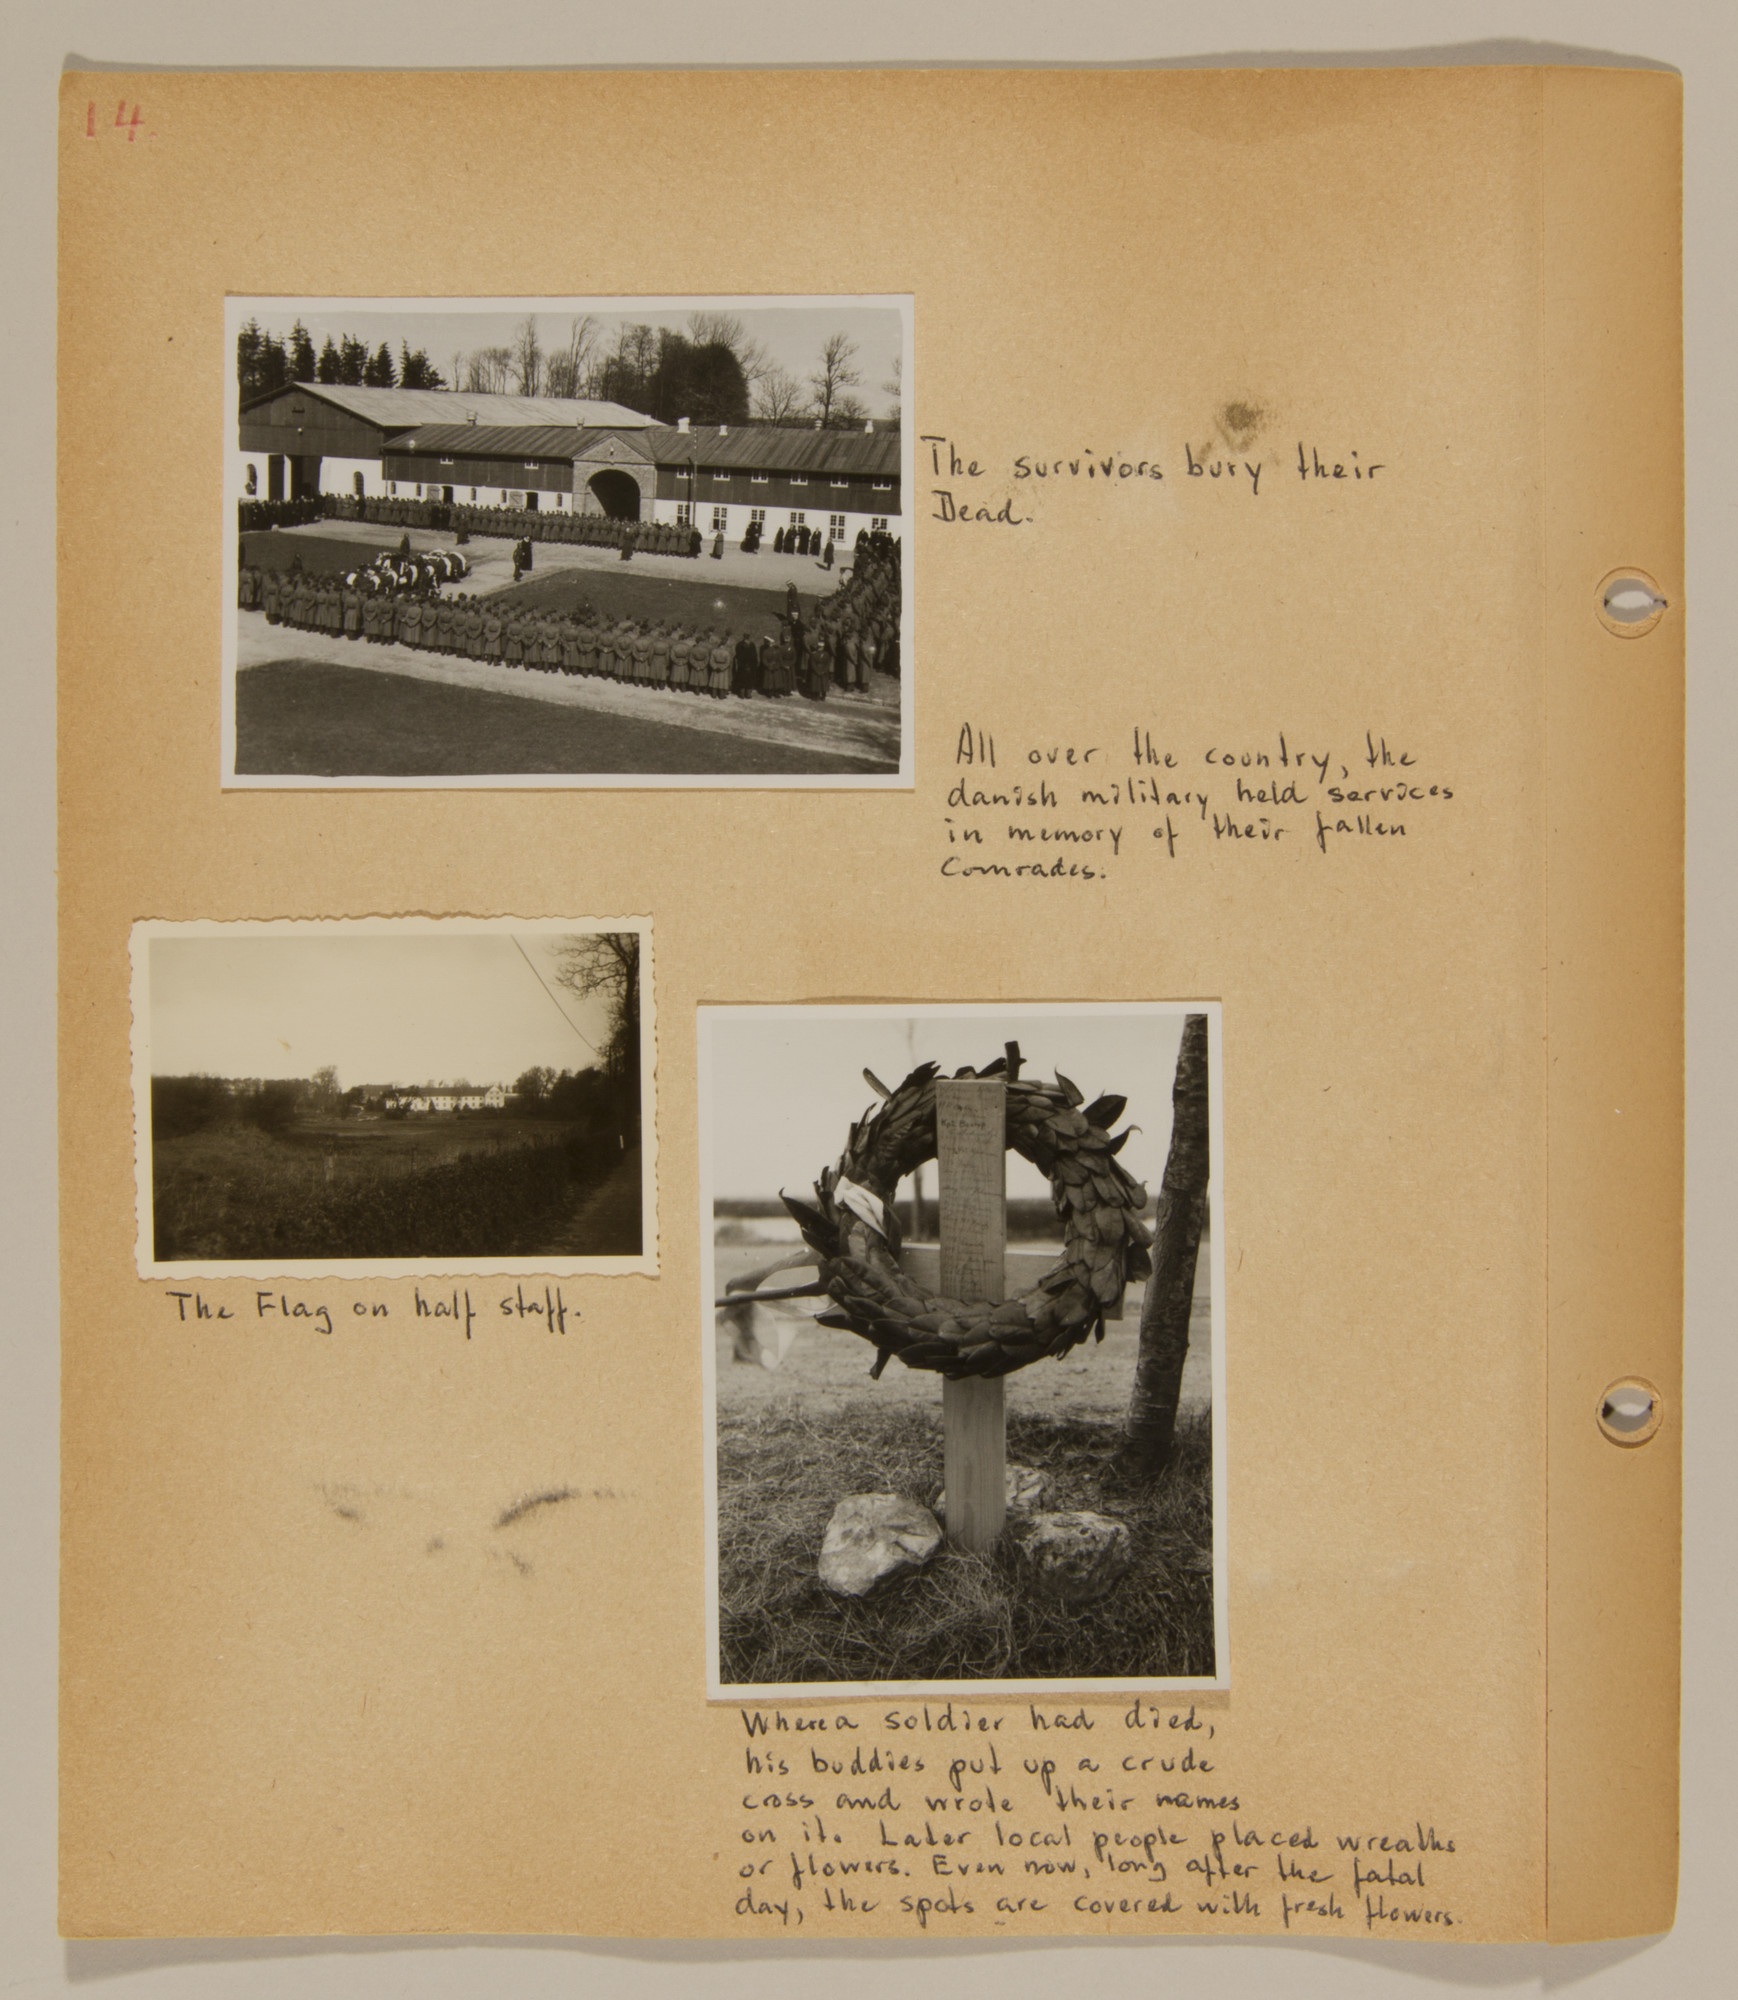 Page from volume one of a set of scrapbooks compiled by Bjorn Sibbern, a Danish policeman and resistance member, documenting the German occupation of Denmark.  This page shows photos of graves and memorials to those killed in the German invasion.